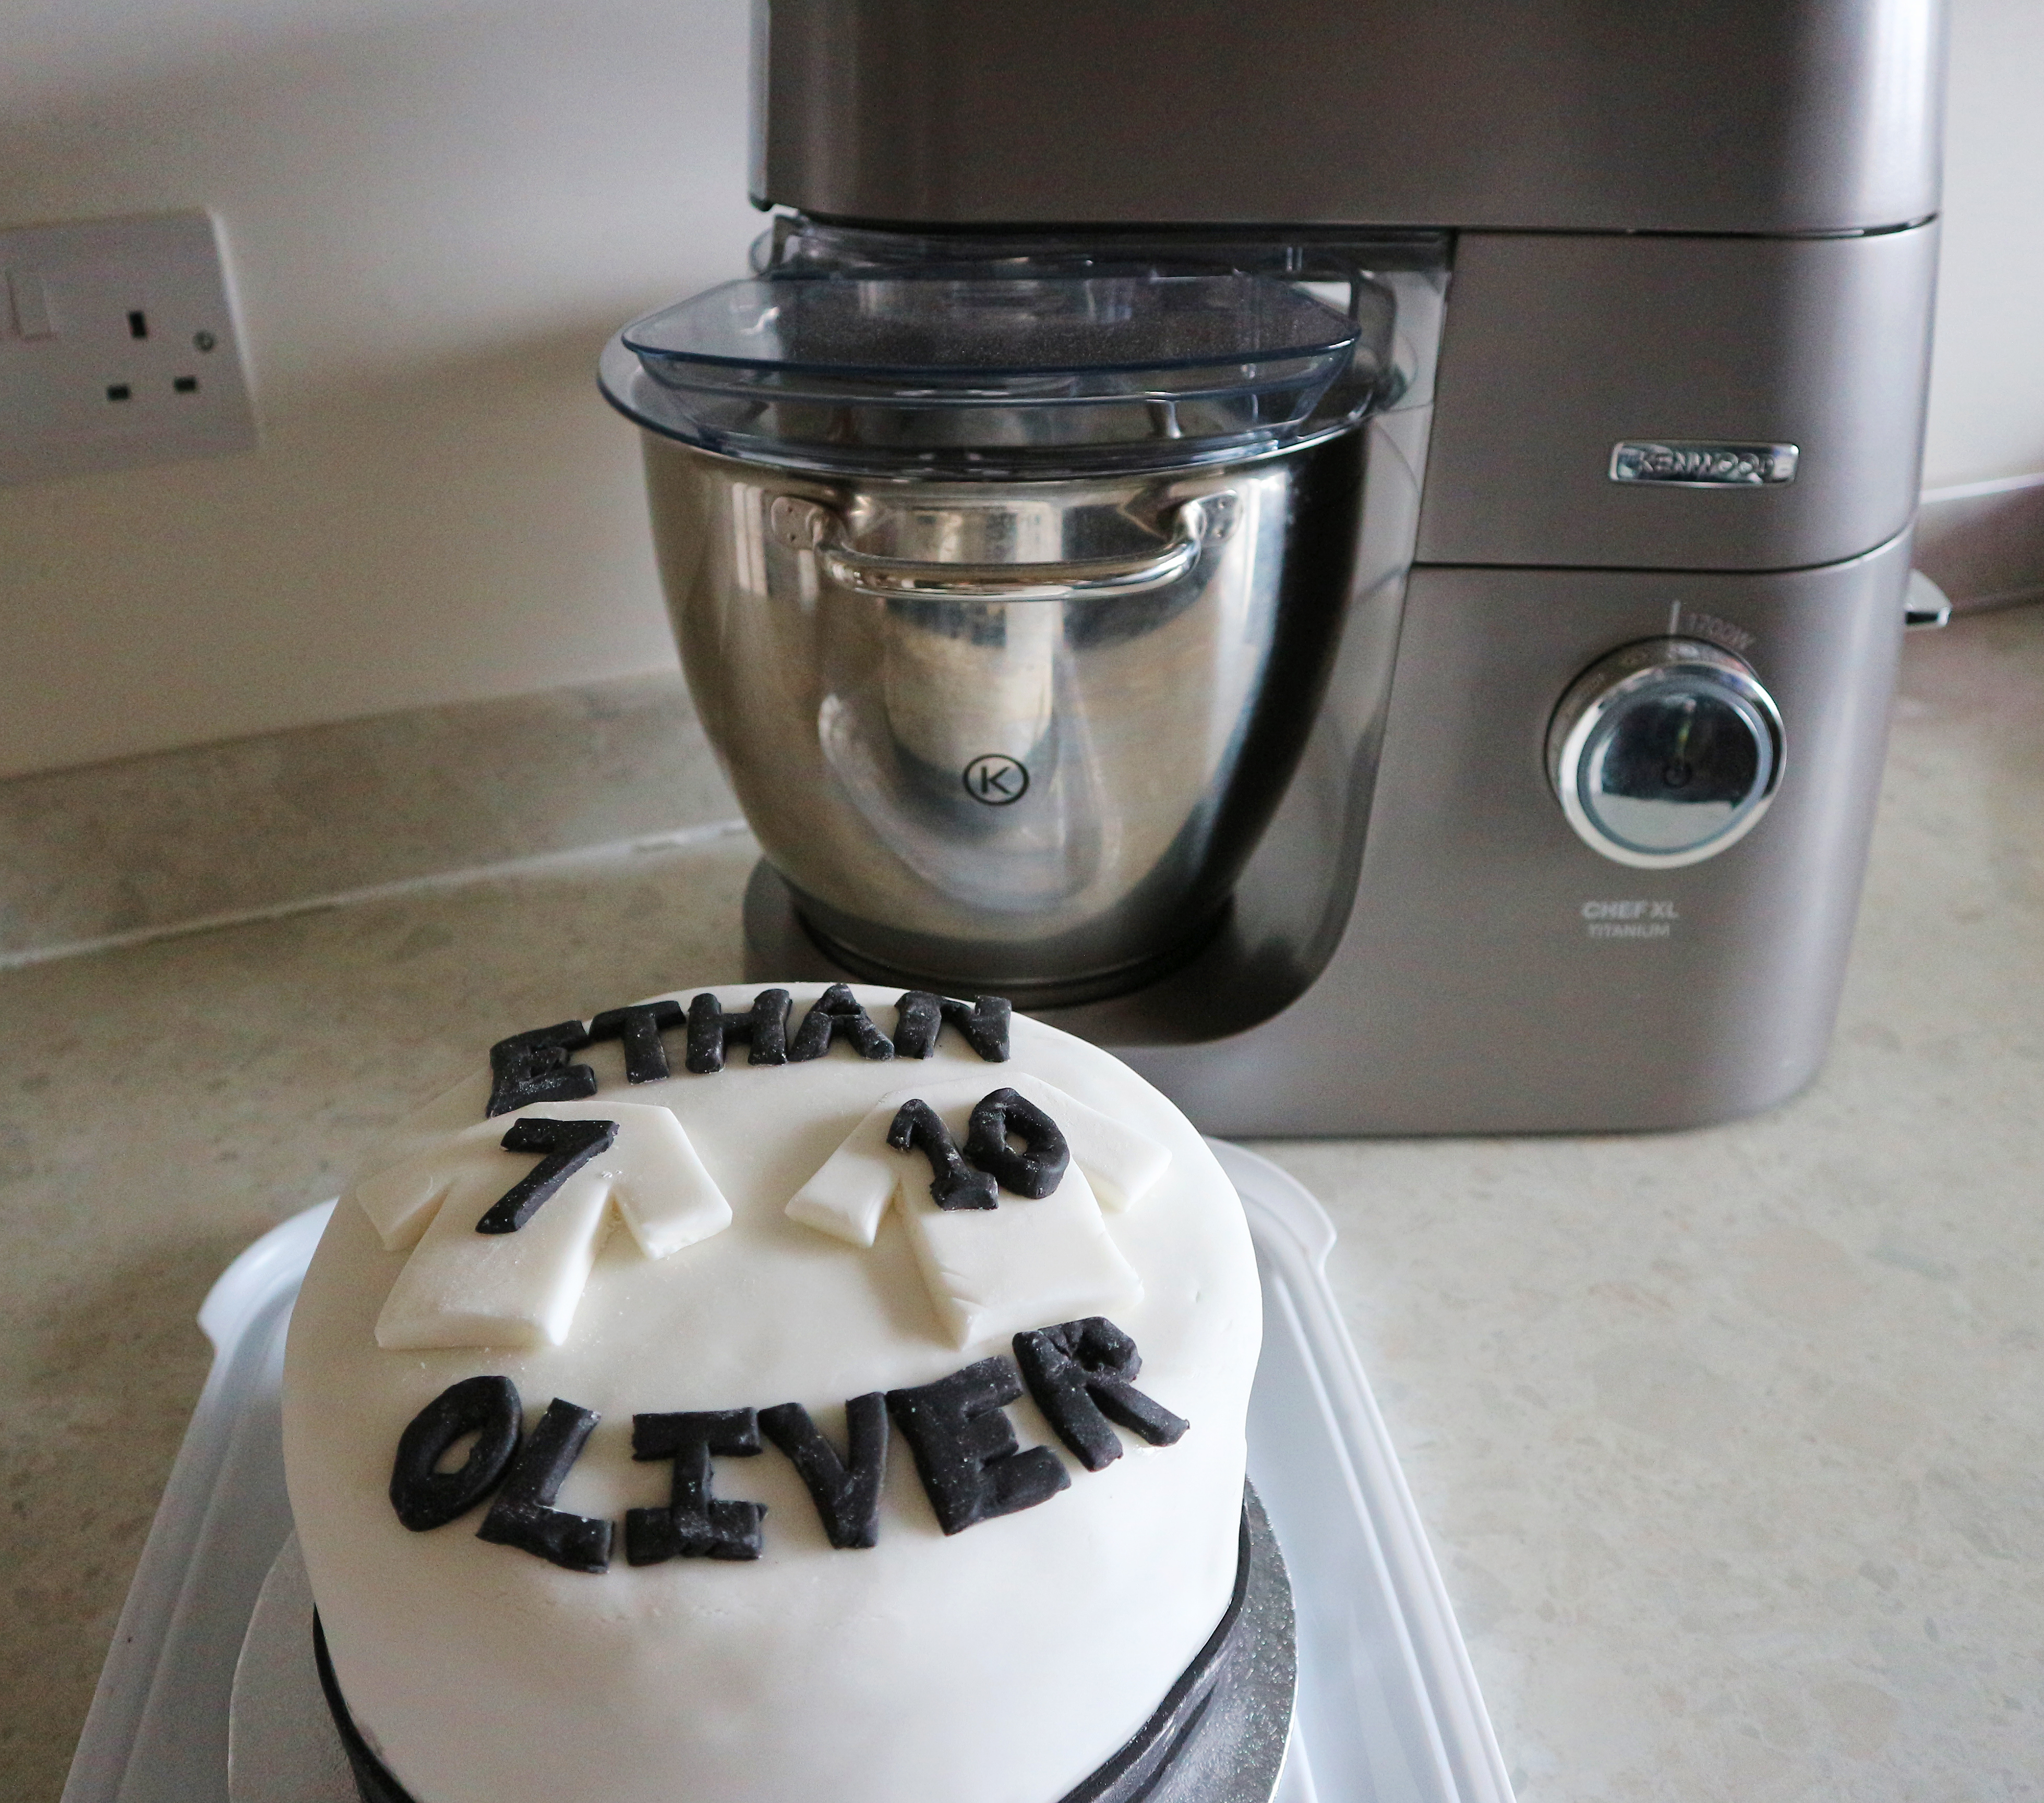 Making a special cake with AO